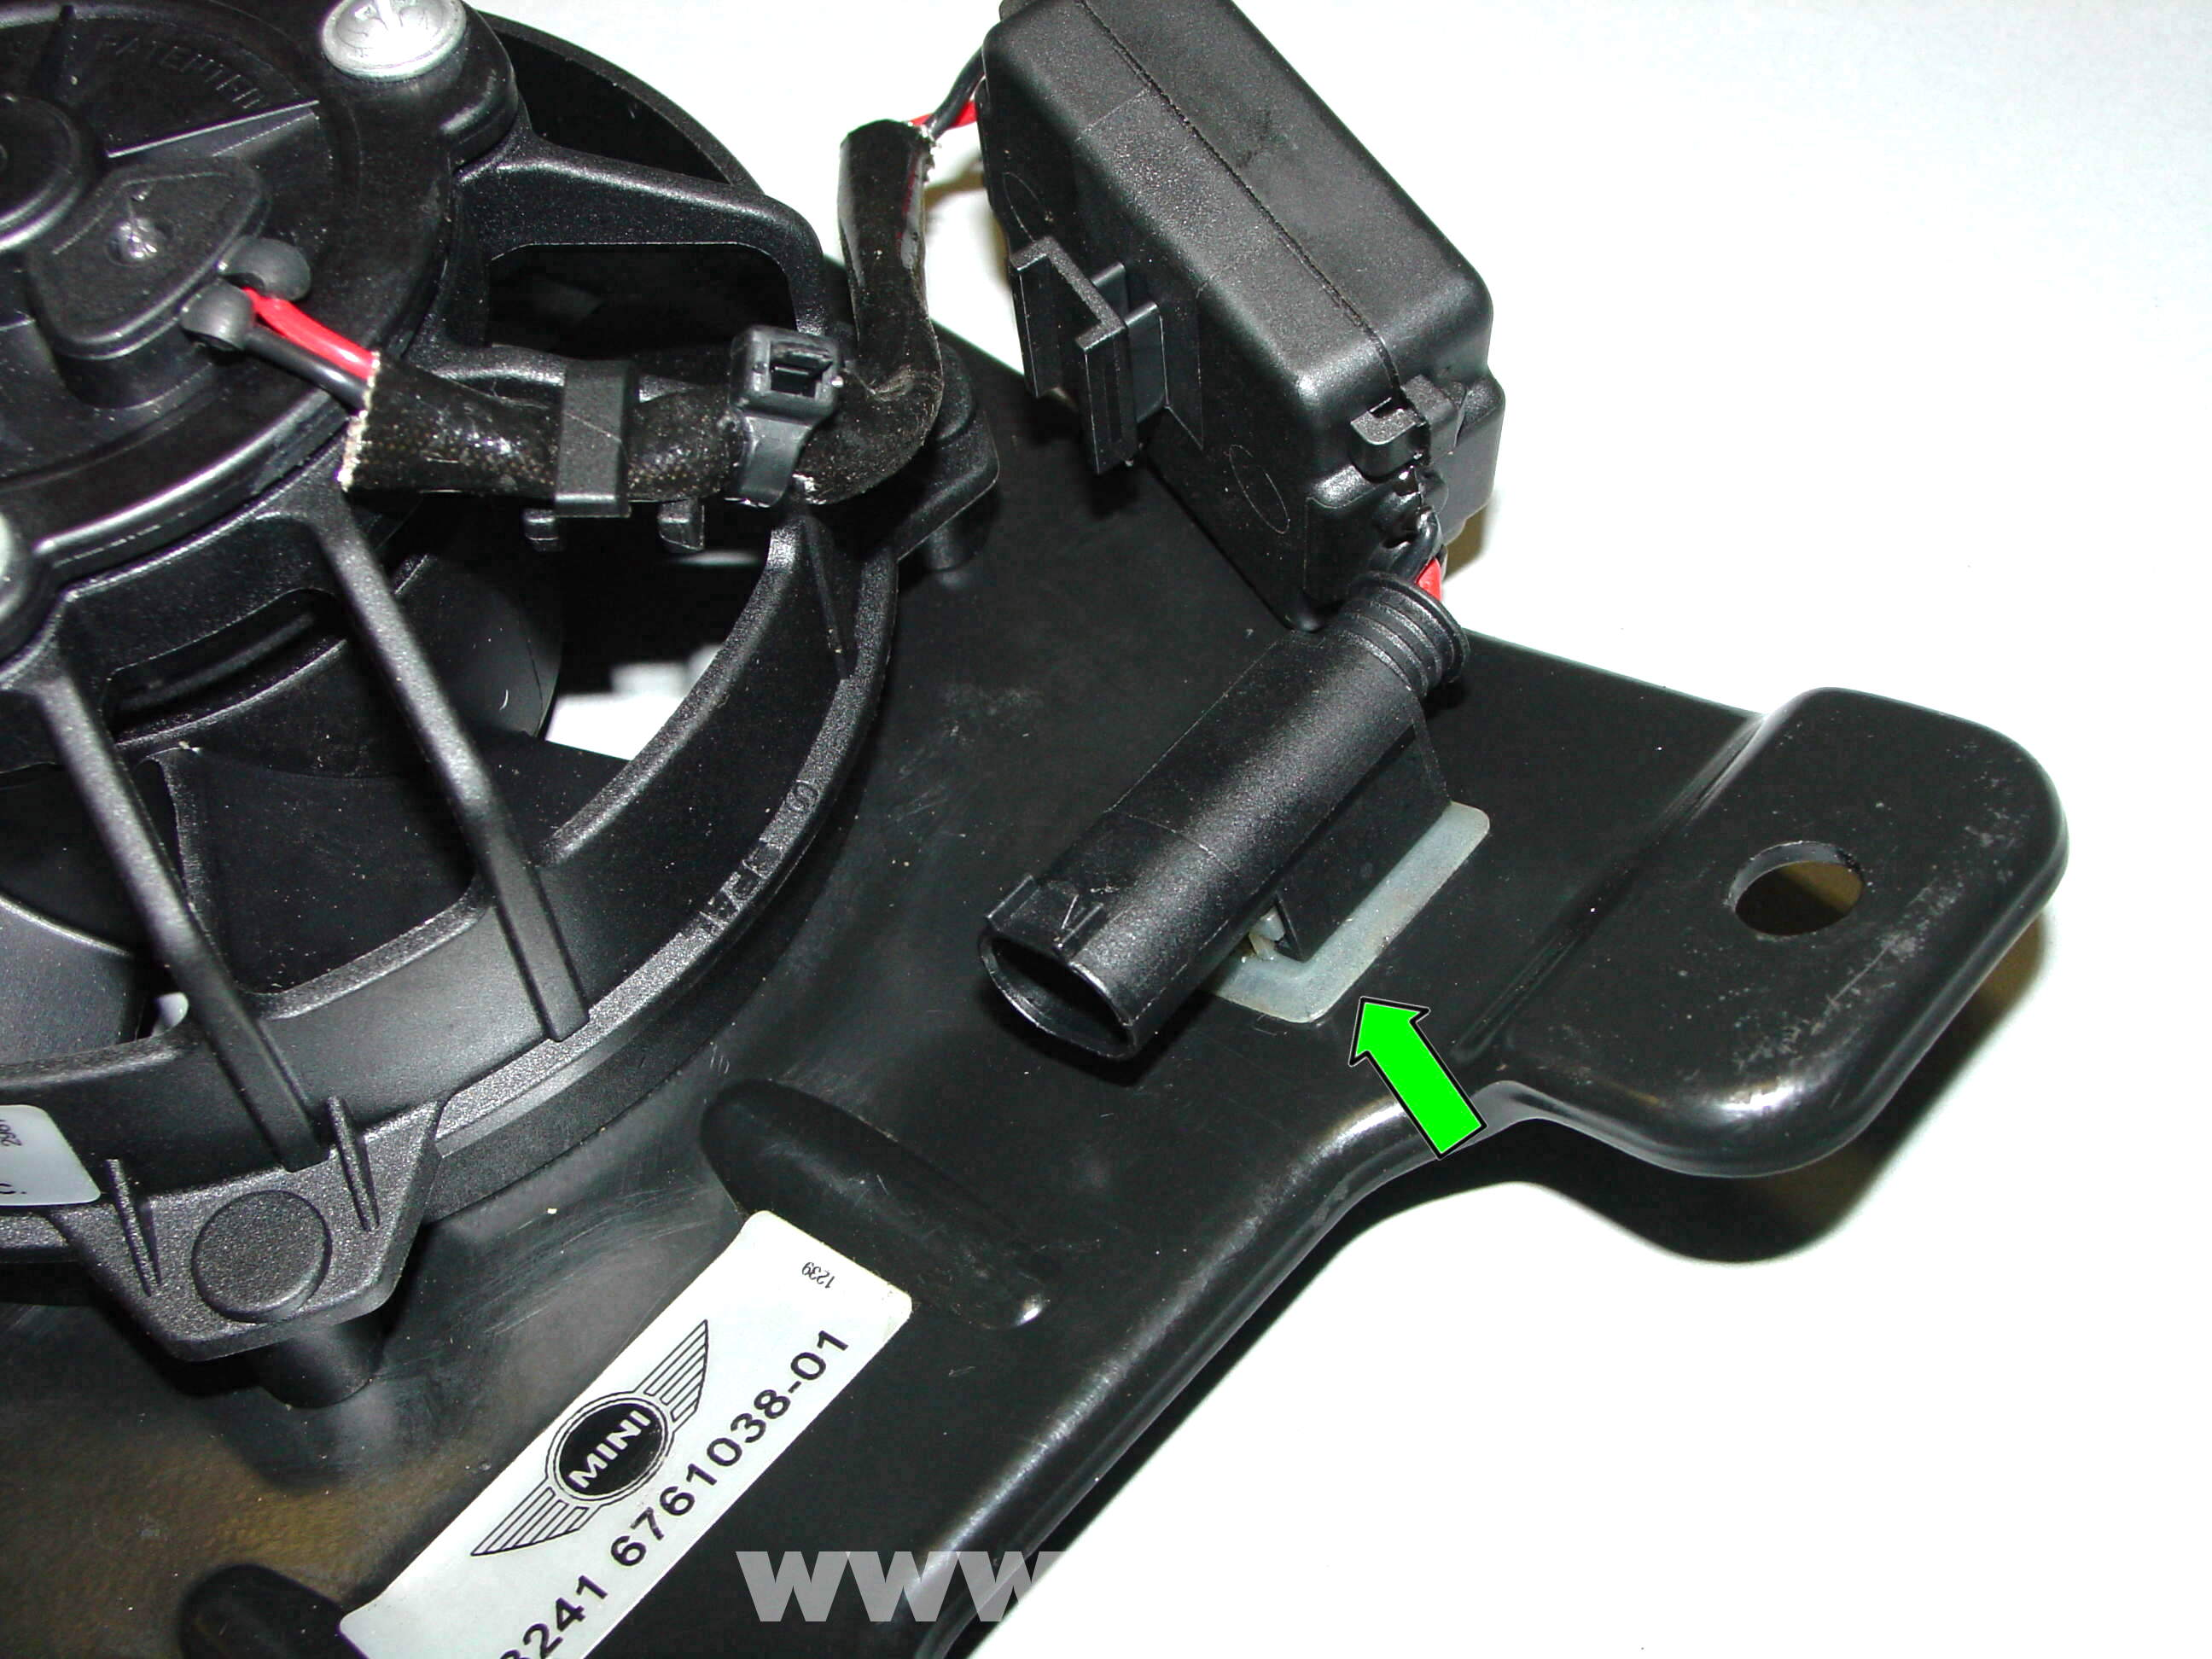 pic07 pelican technical article power steering fan replacement r50 r50 mini cooper wiring diagram at n-0.co